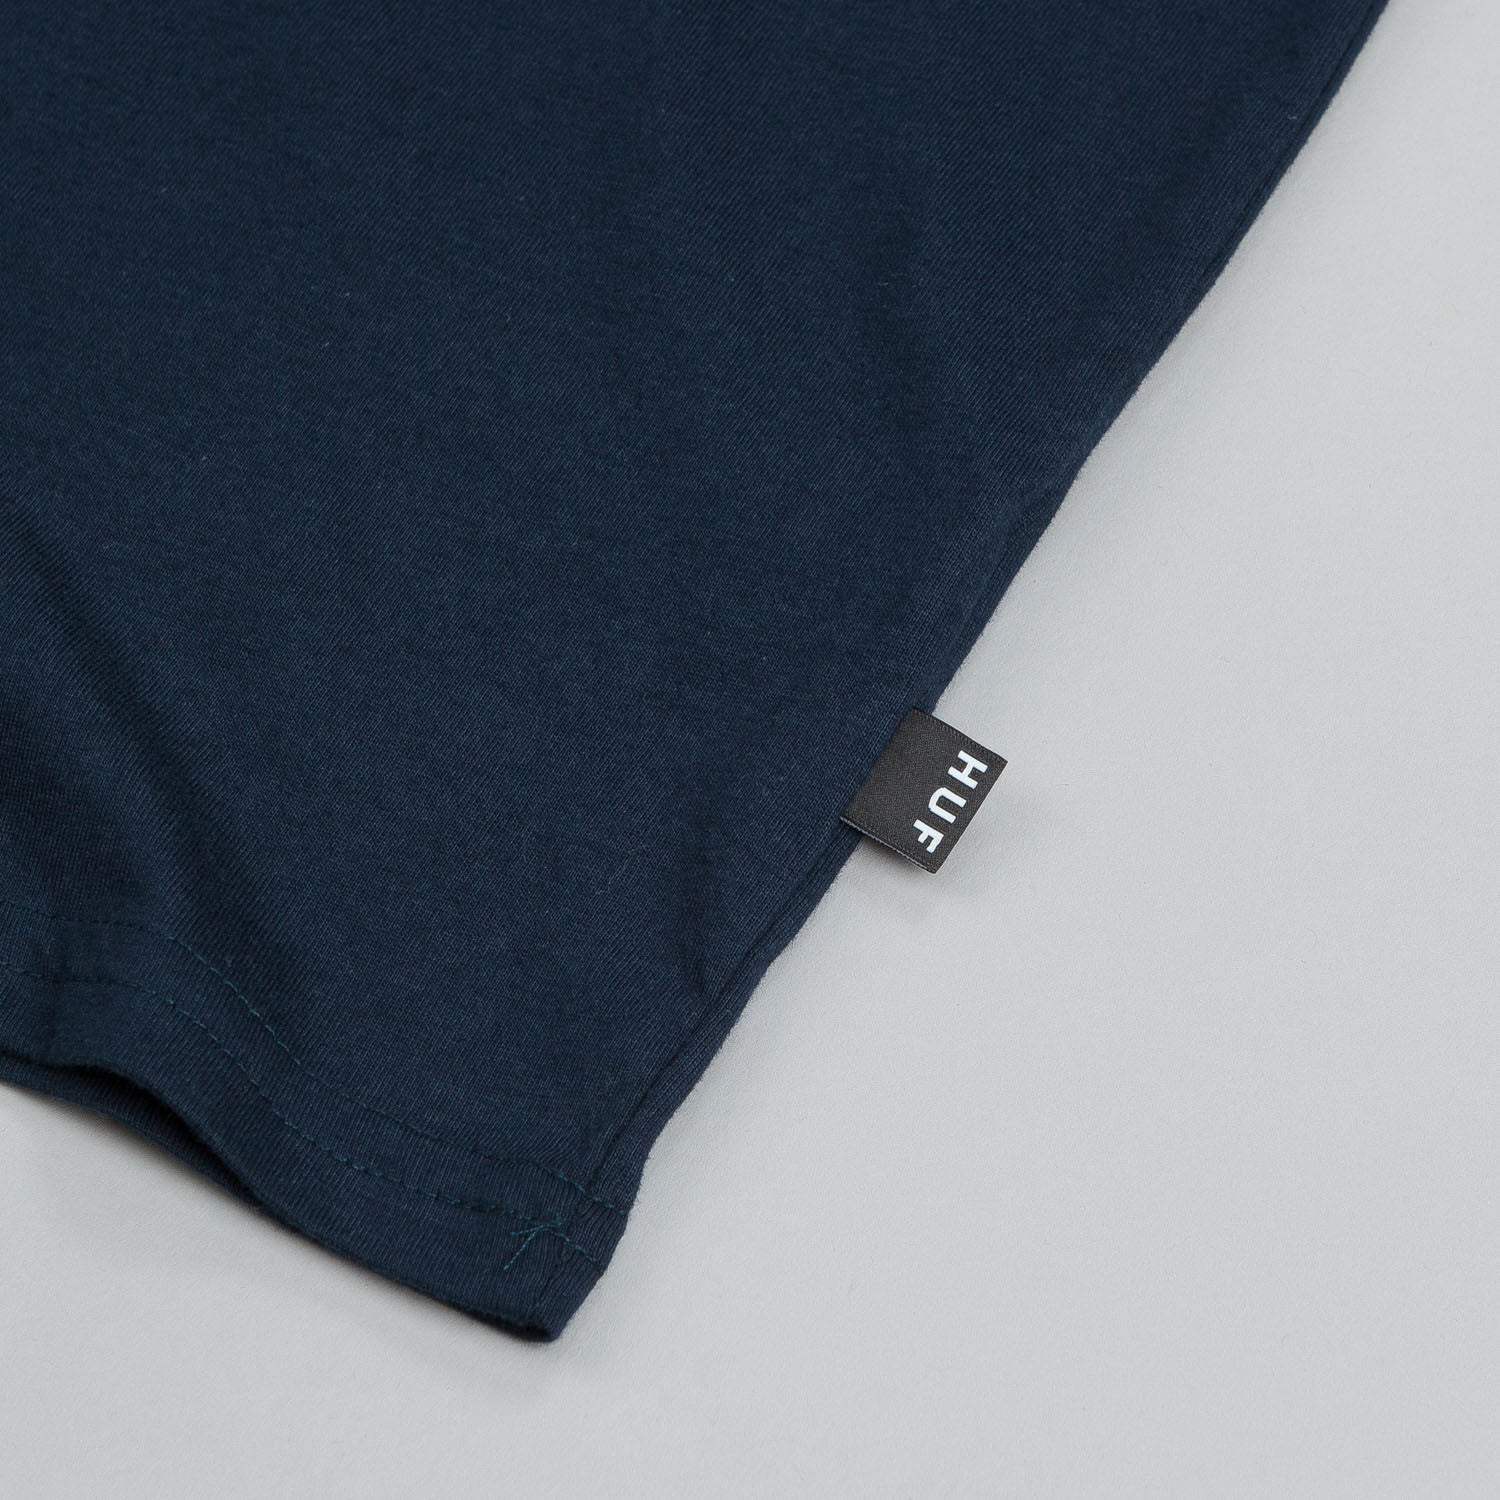 HUF Classic H Pocket T-shirt Navy